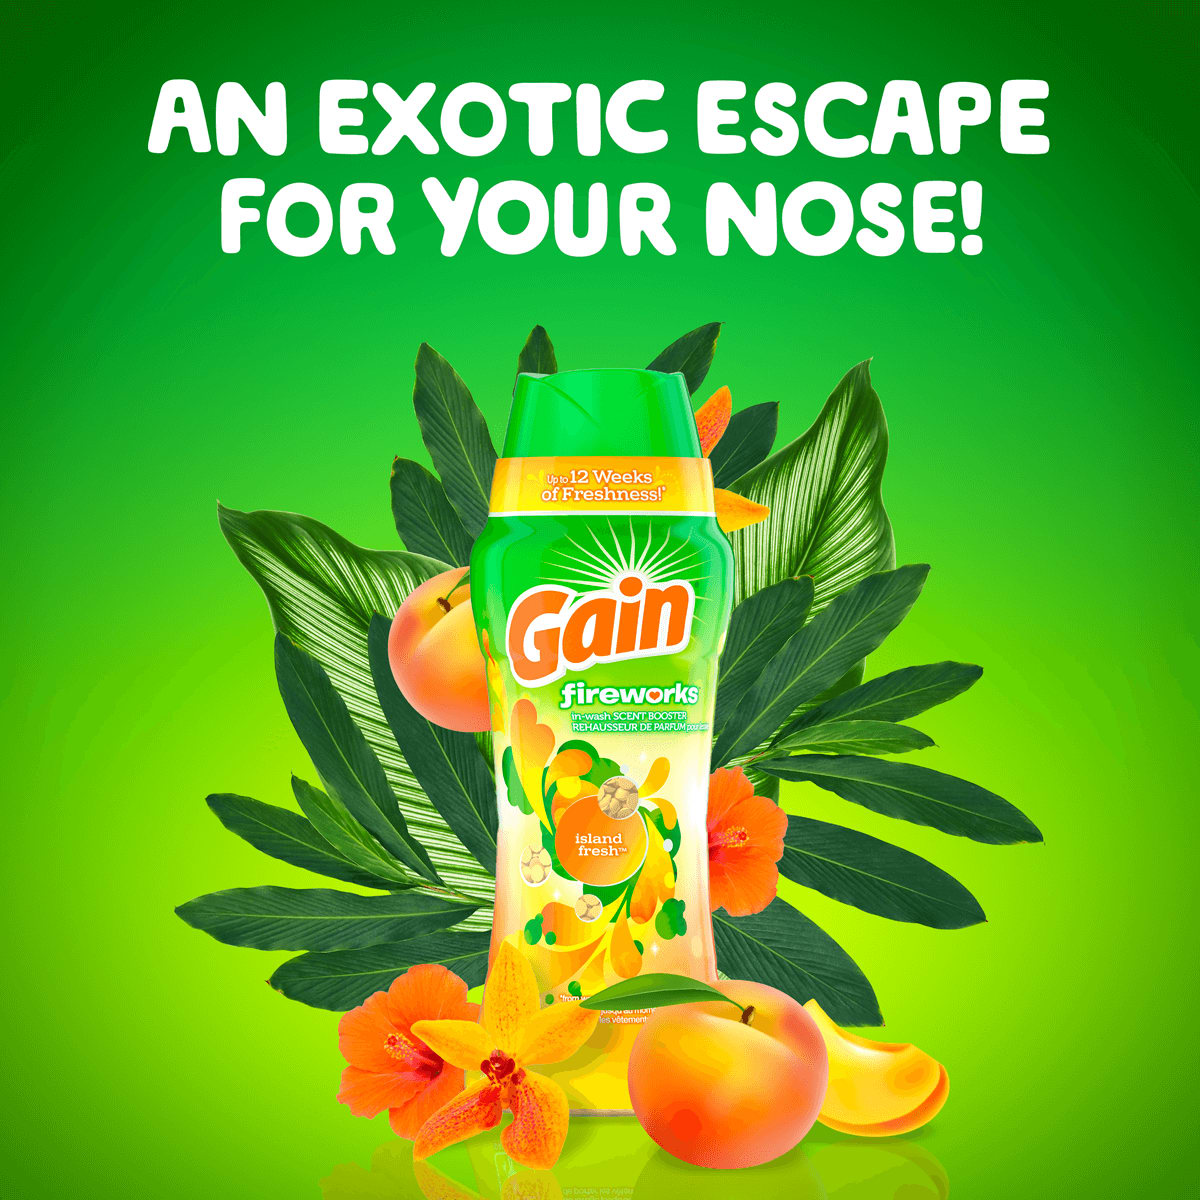 An exotic escape for your nose - Gain Island Fresh Fireworks Scent Booster package